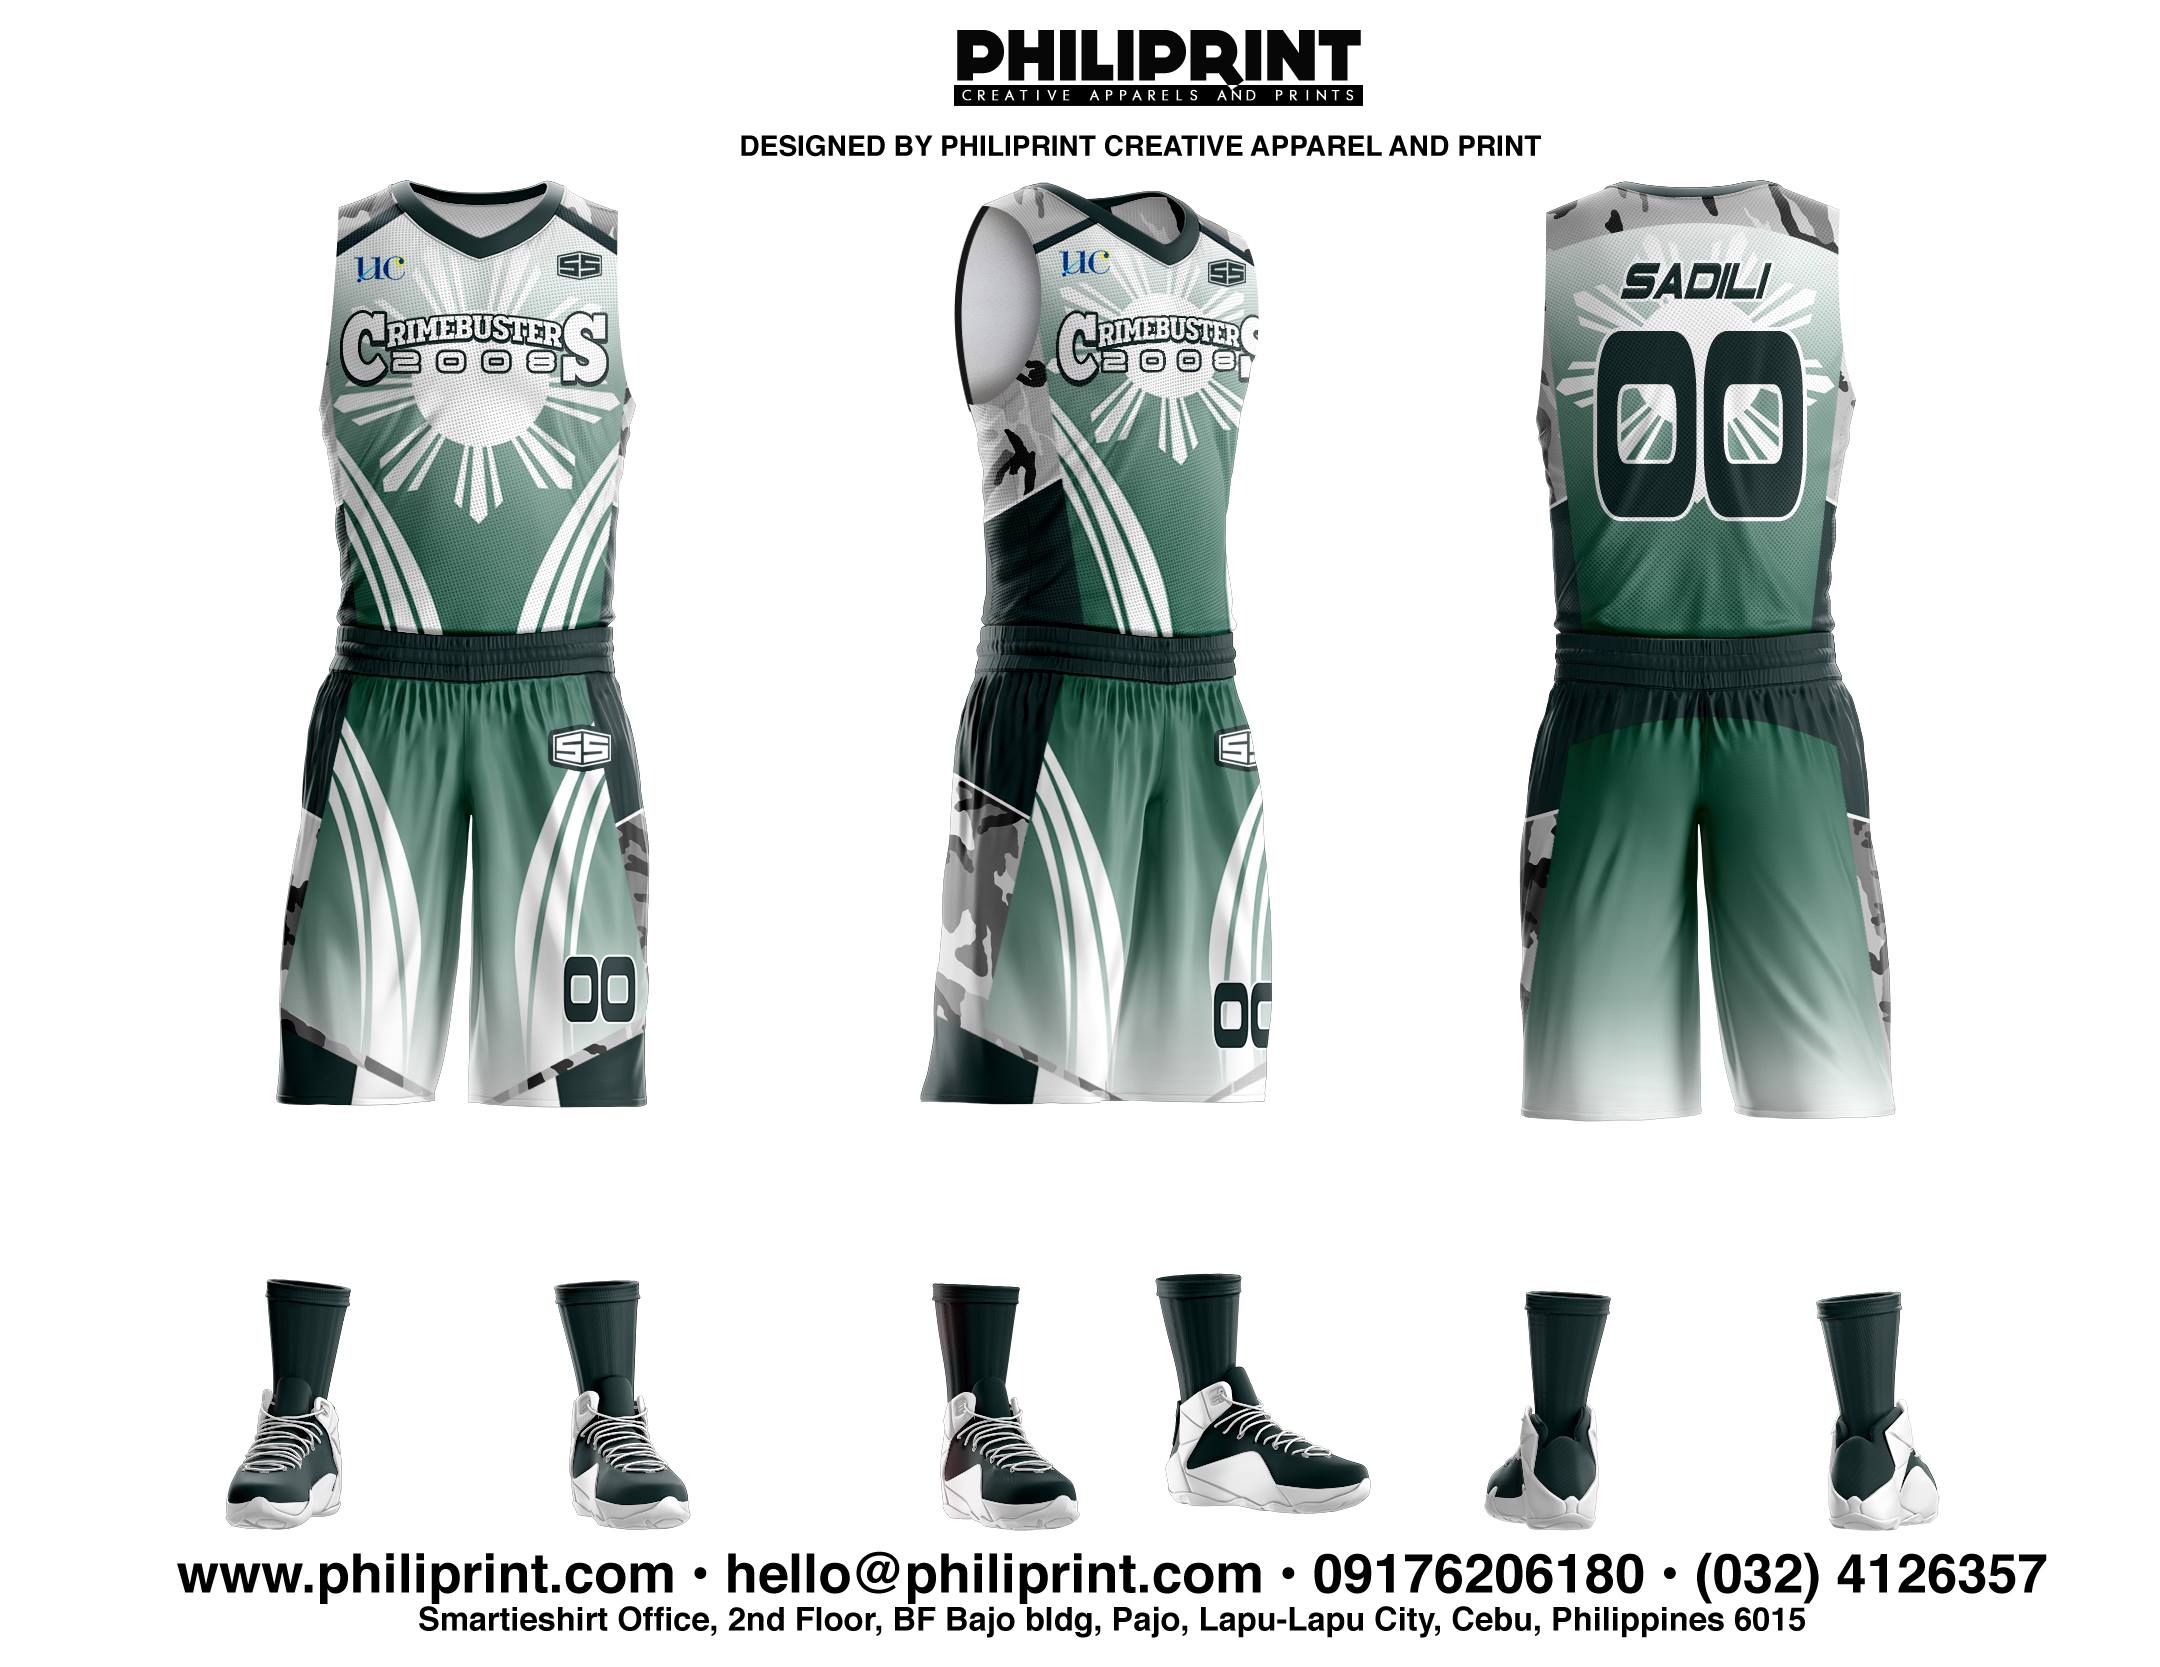 buy popular cac05 b8eaf Crimebusters Full Sublimation Basketball Jersey – Philiprint